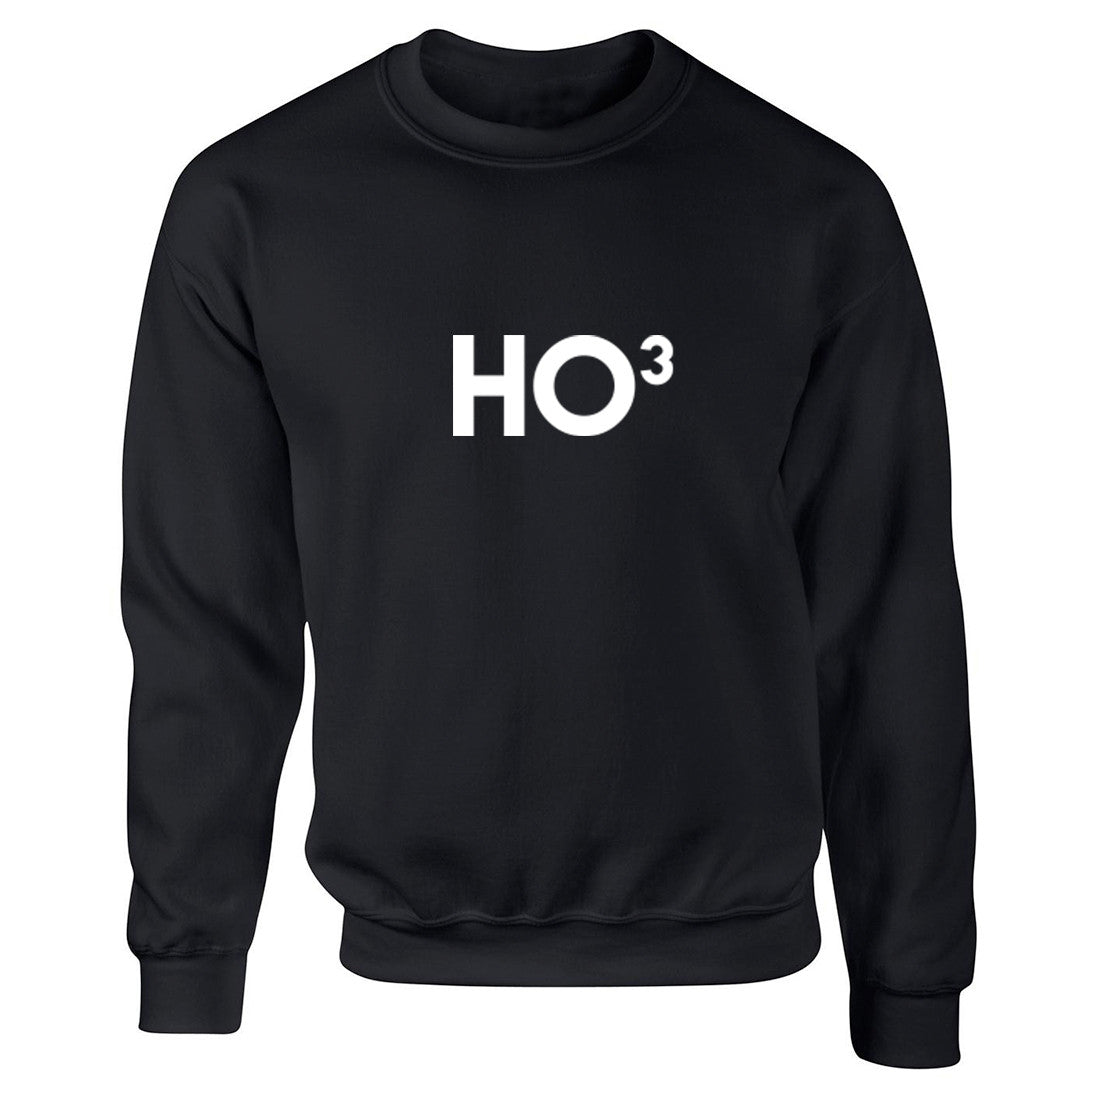 Ho3 Unisex Jumper Funny Nerd Science Christmas Collection Gift K0118